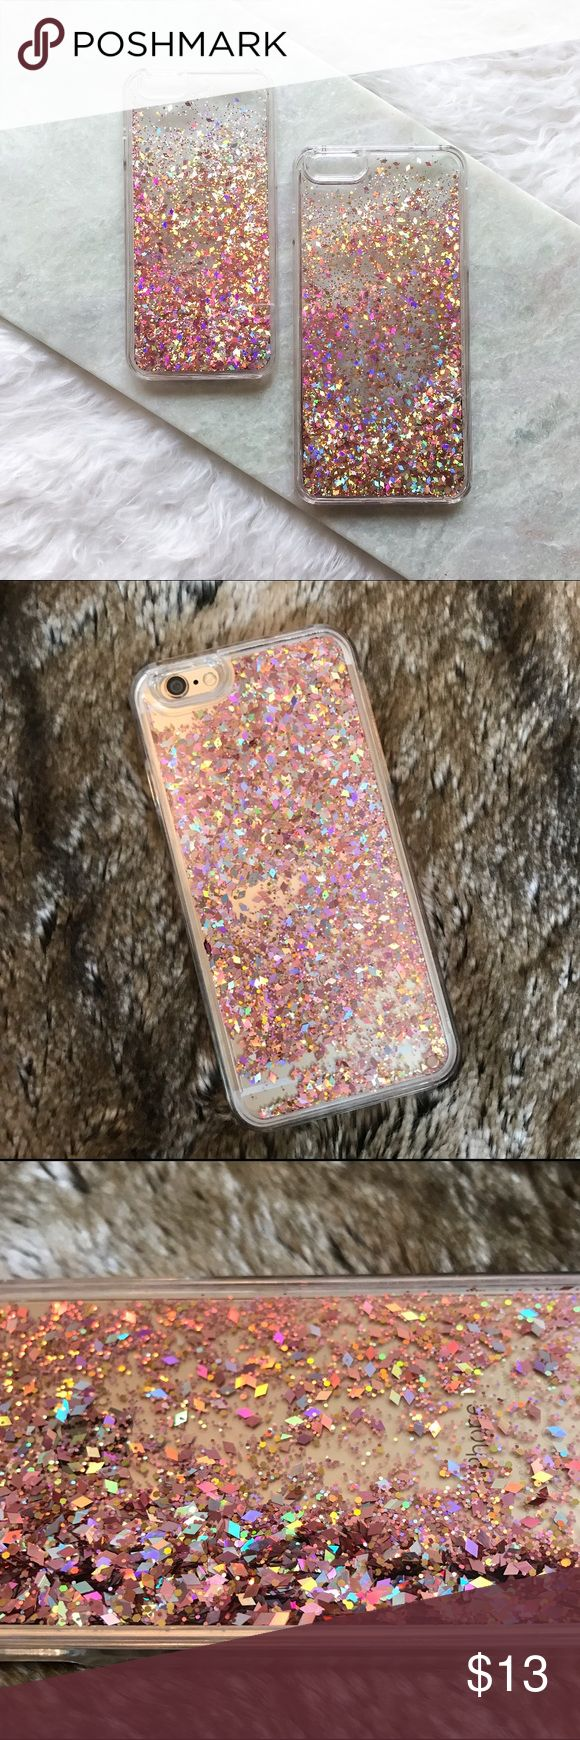 Rose Gold Iridescent Diamond Liquid iPhone 6 Case This gorgeous rose gold pink liquid diamond glitter iPhone 6 case is in EUC. I love this case so much but upgraded to the iPhone 7. Bittersweet. So sad to let it go. My loss is your gain!  Please feel free to ask any questions. Thank you for visiting my closet! Accessories Phone Cases